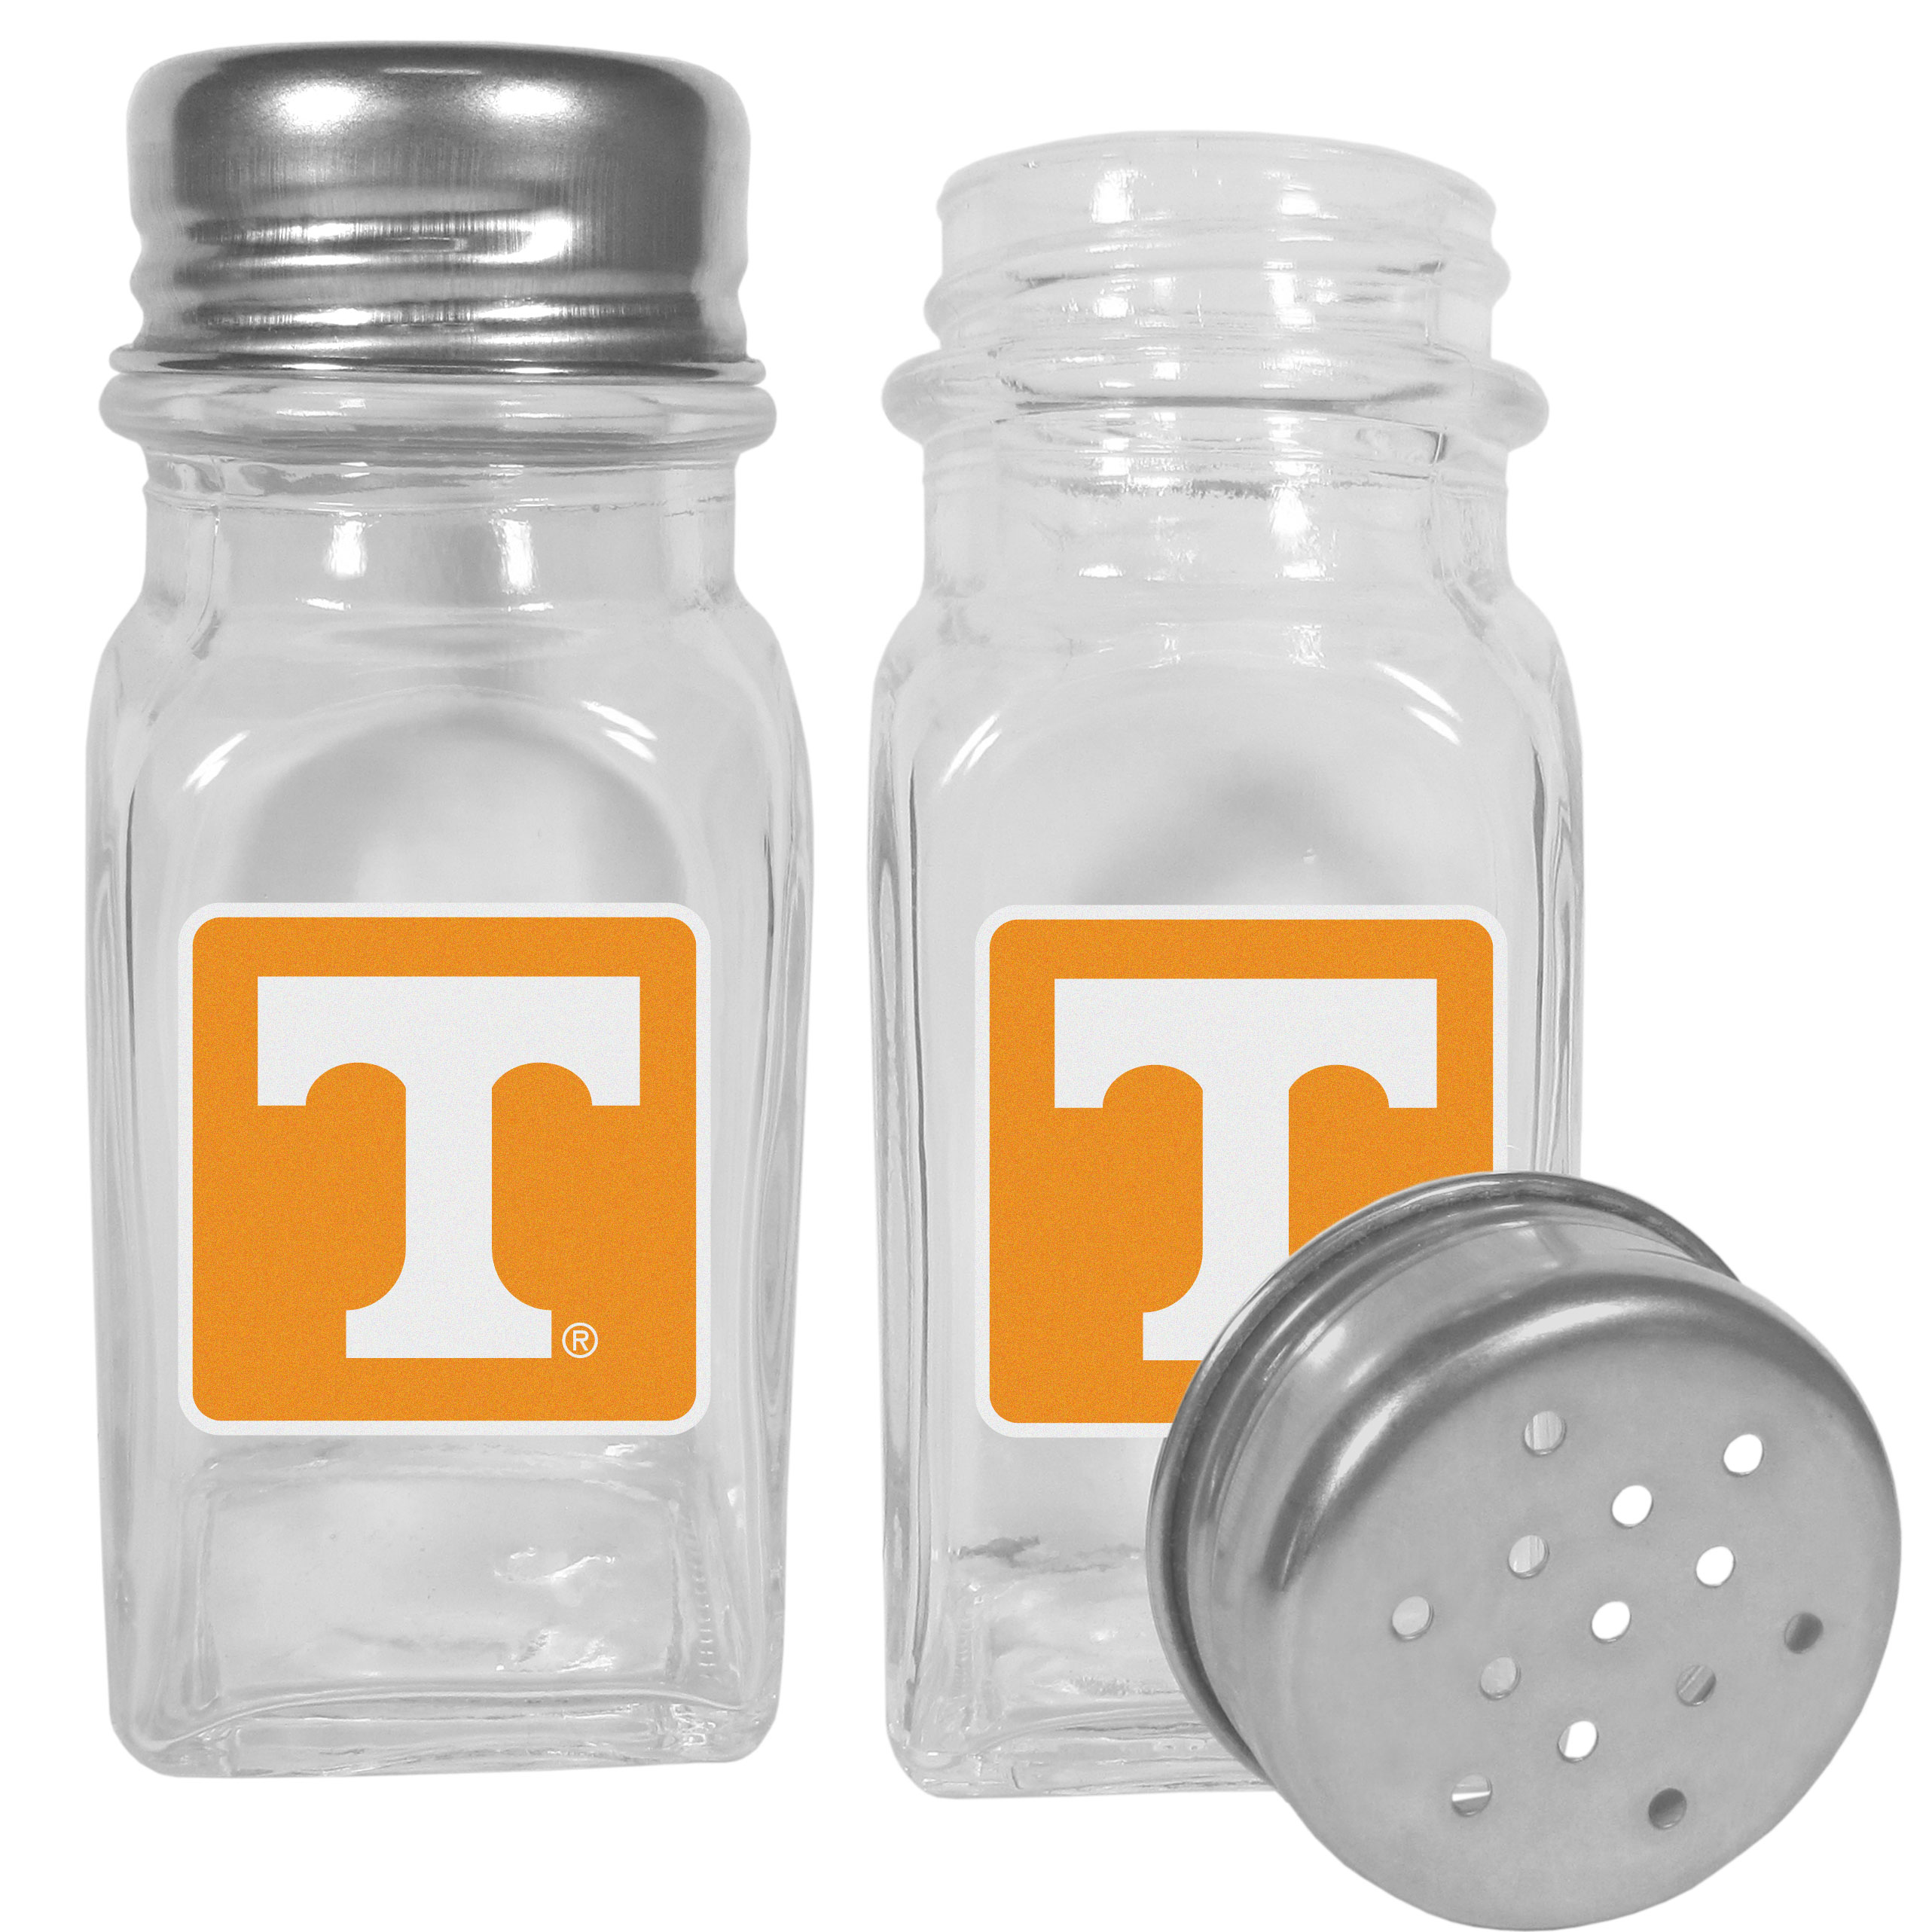 Tennessee Volunteers Graphics Salt & Pepper Shaker - No tailgate party is complete without your Tennessee Volunteers salt & pepper shakers featuring bright team logos. The diner replica salt and pepper shakers are glass with screw top lids. These team shakers are a great grill accessory whether you are barbecuing on the patio, picnicing or having a game day party.